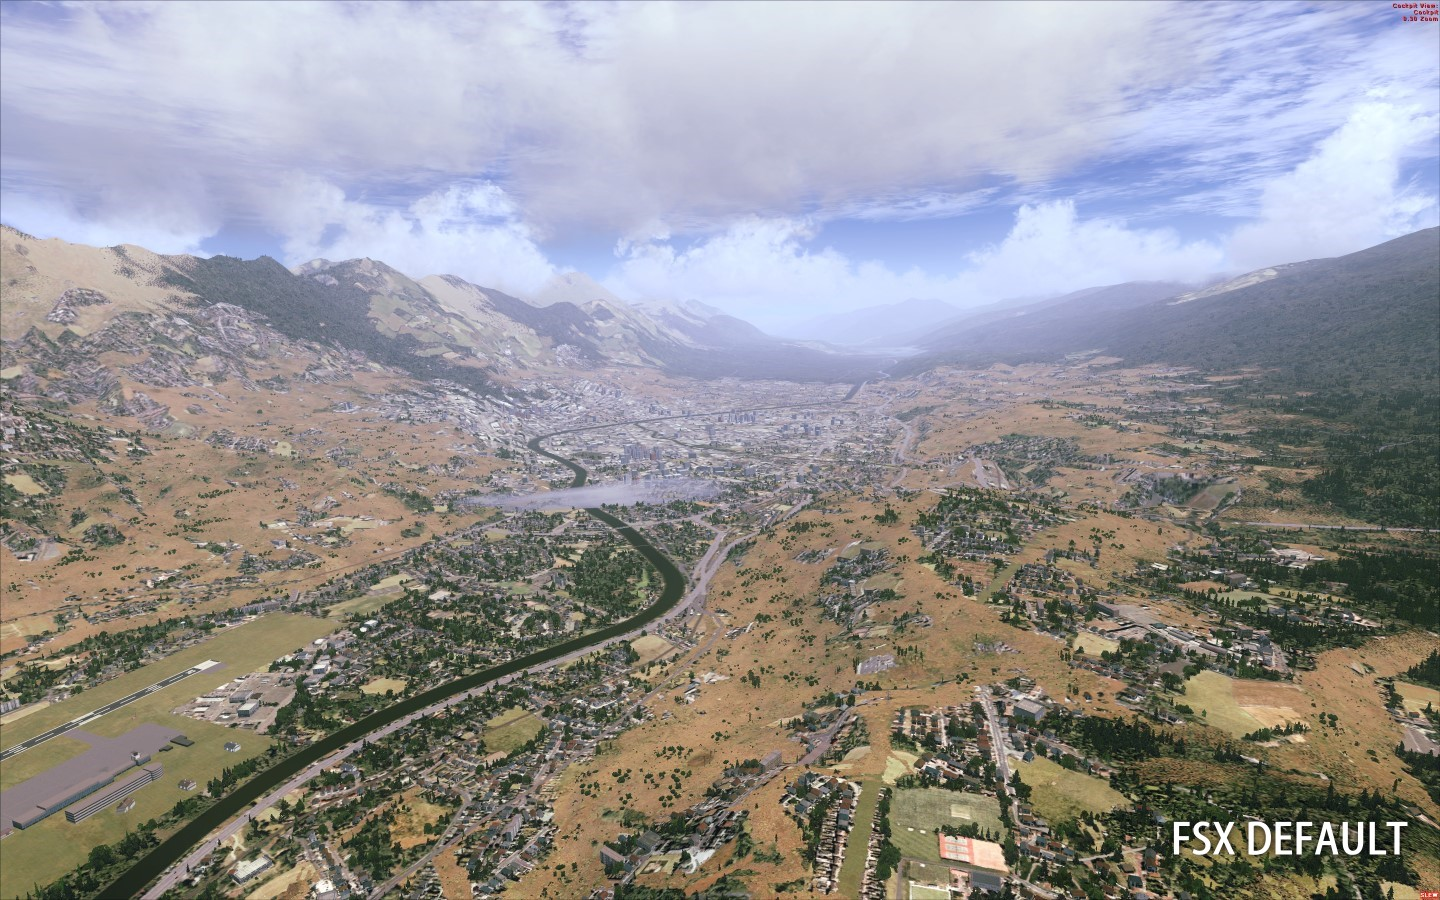 Fsx Global Images - Reverse Search